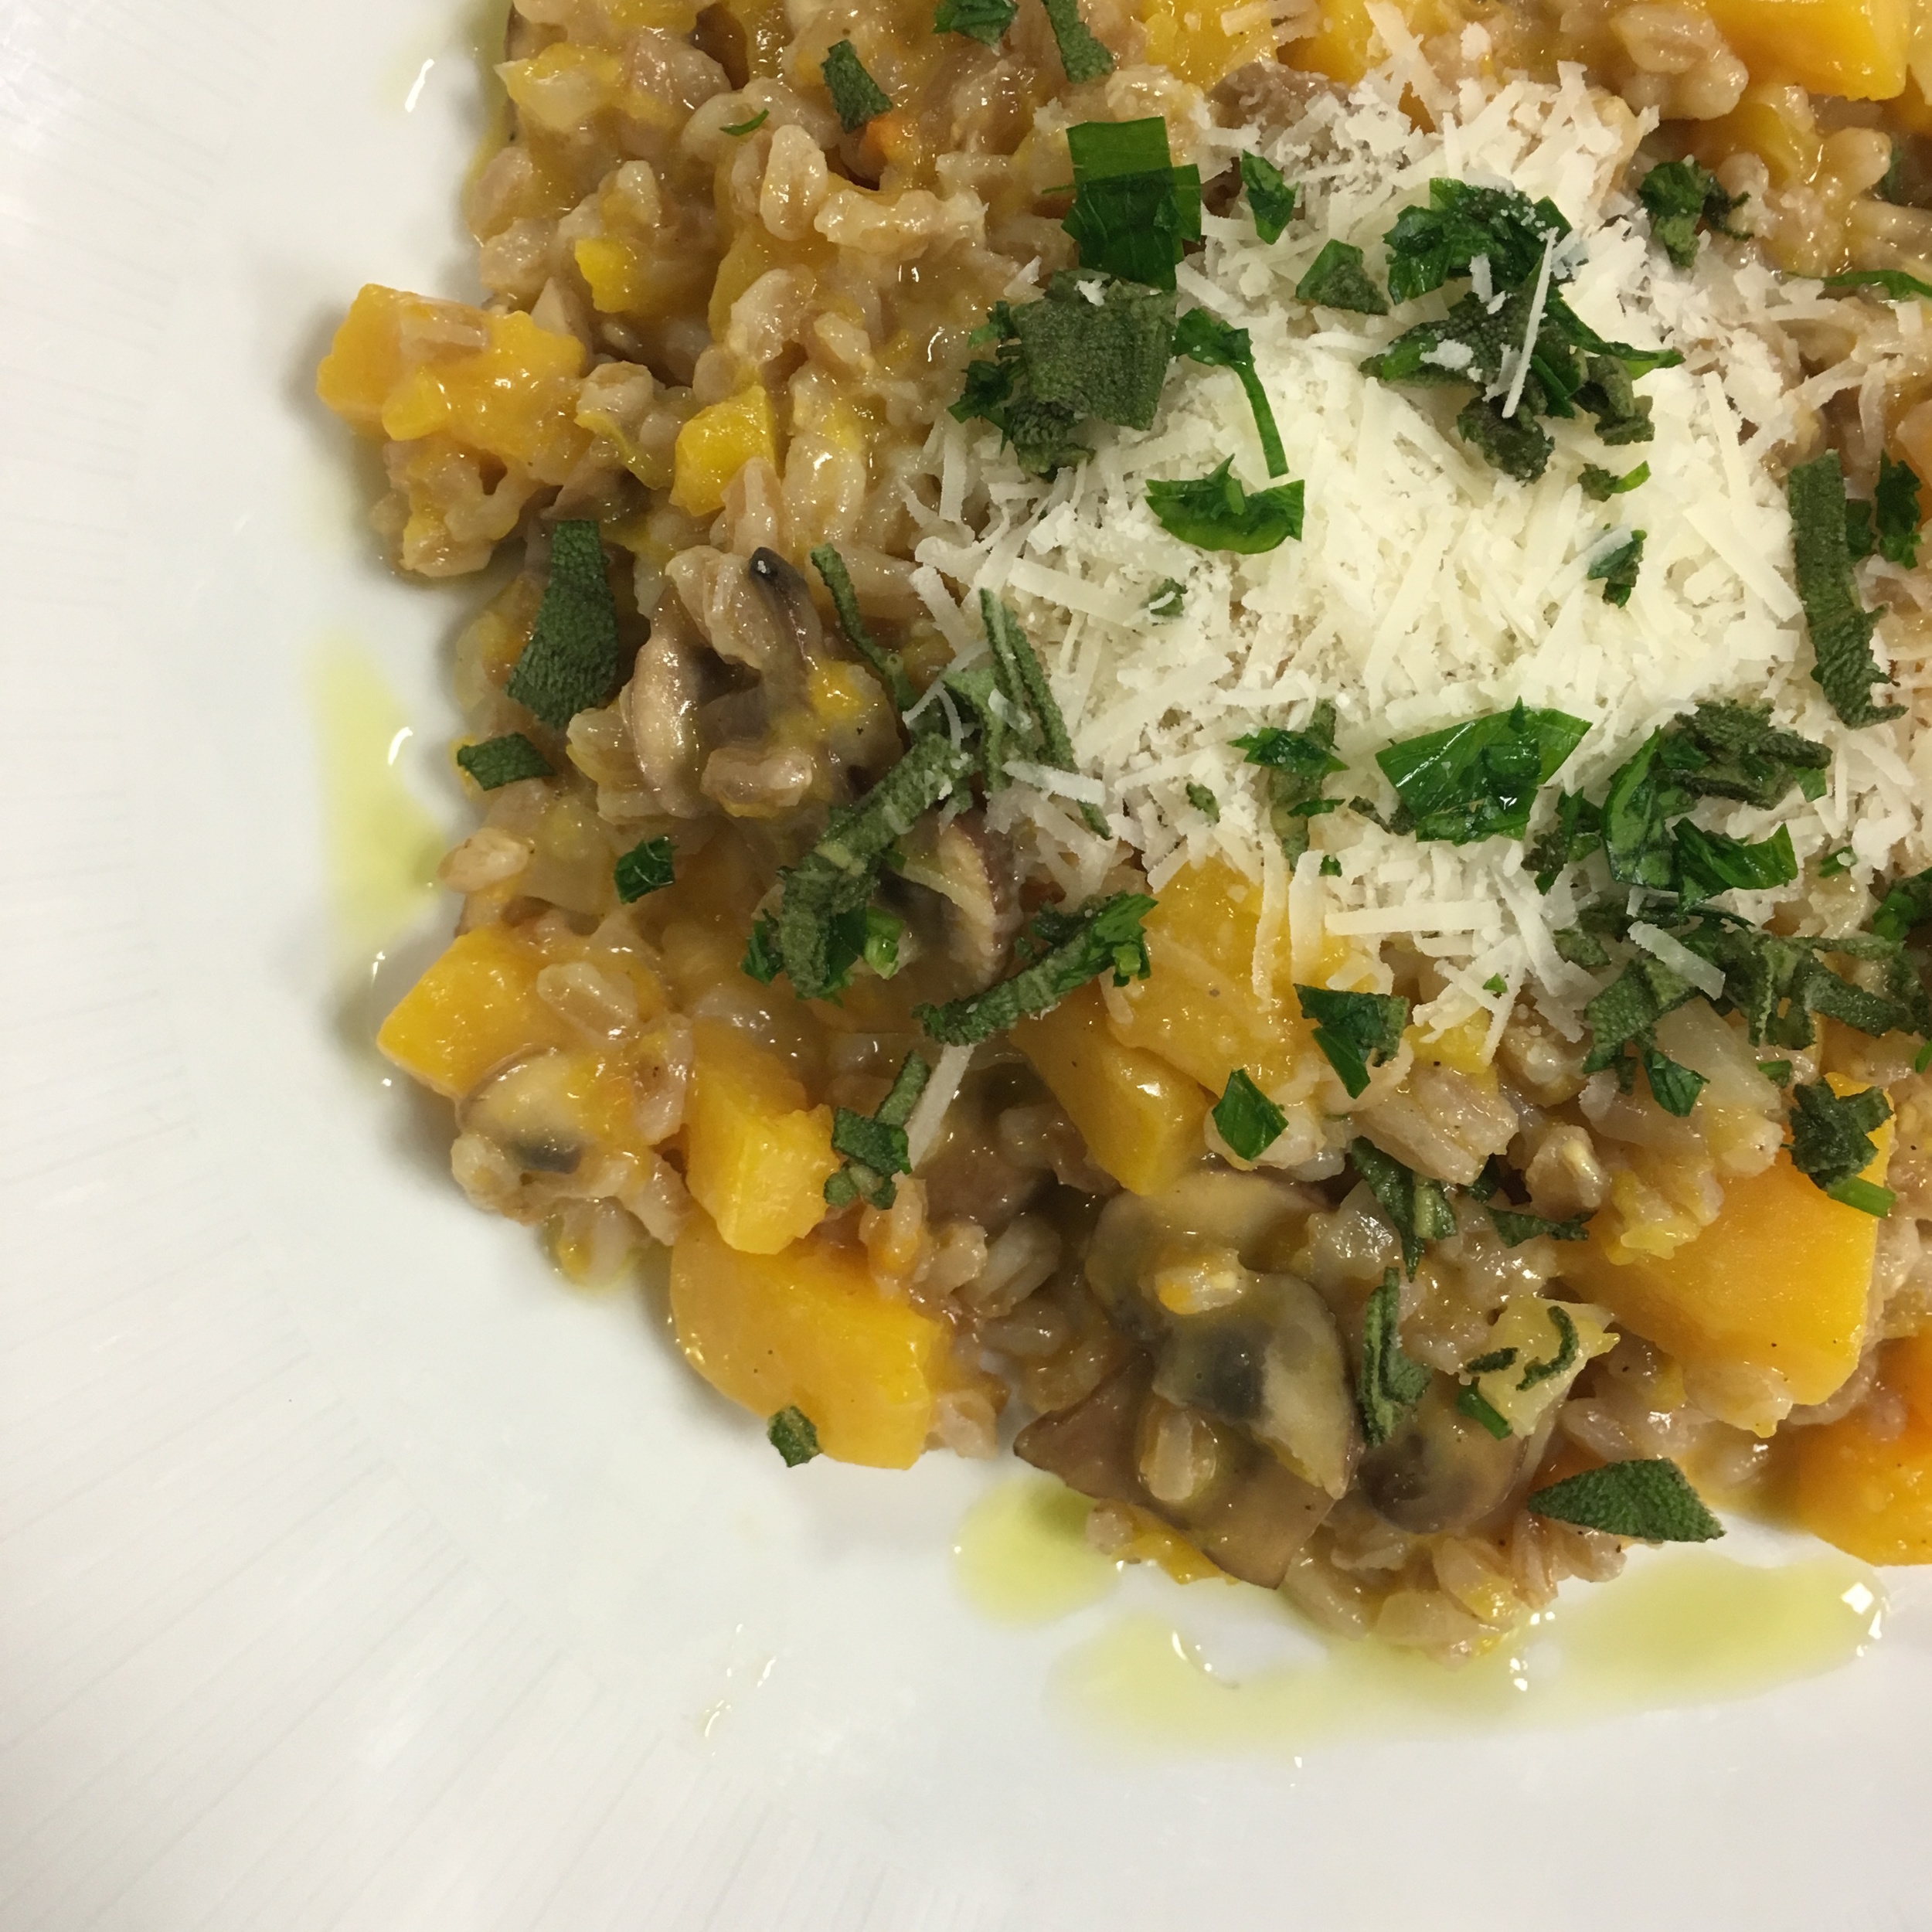 FARRO IS A DELICIOUS WHOLE GRAIN WHICH IS NOT USED ENOUGH! THIS DISH IS DEFINITELY BETTER SUITED FOR COLDER WEATHER BUT IT WAS STILL DELICIOUS!